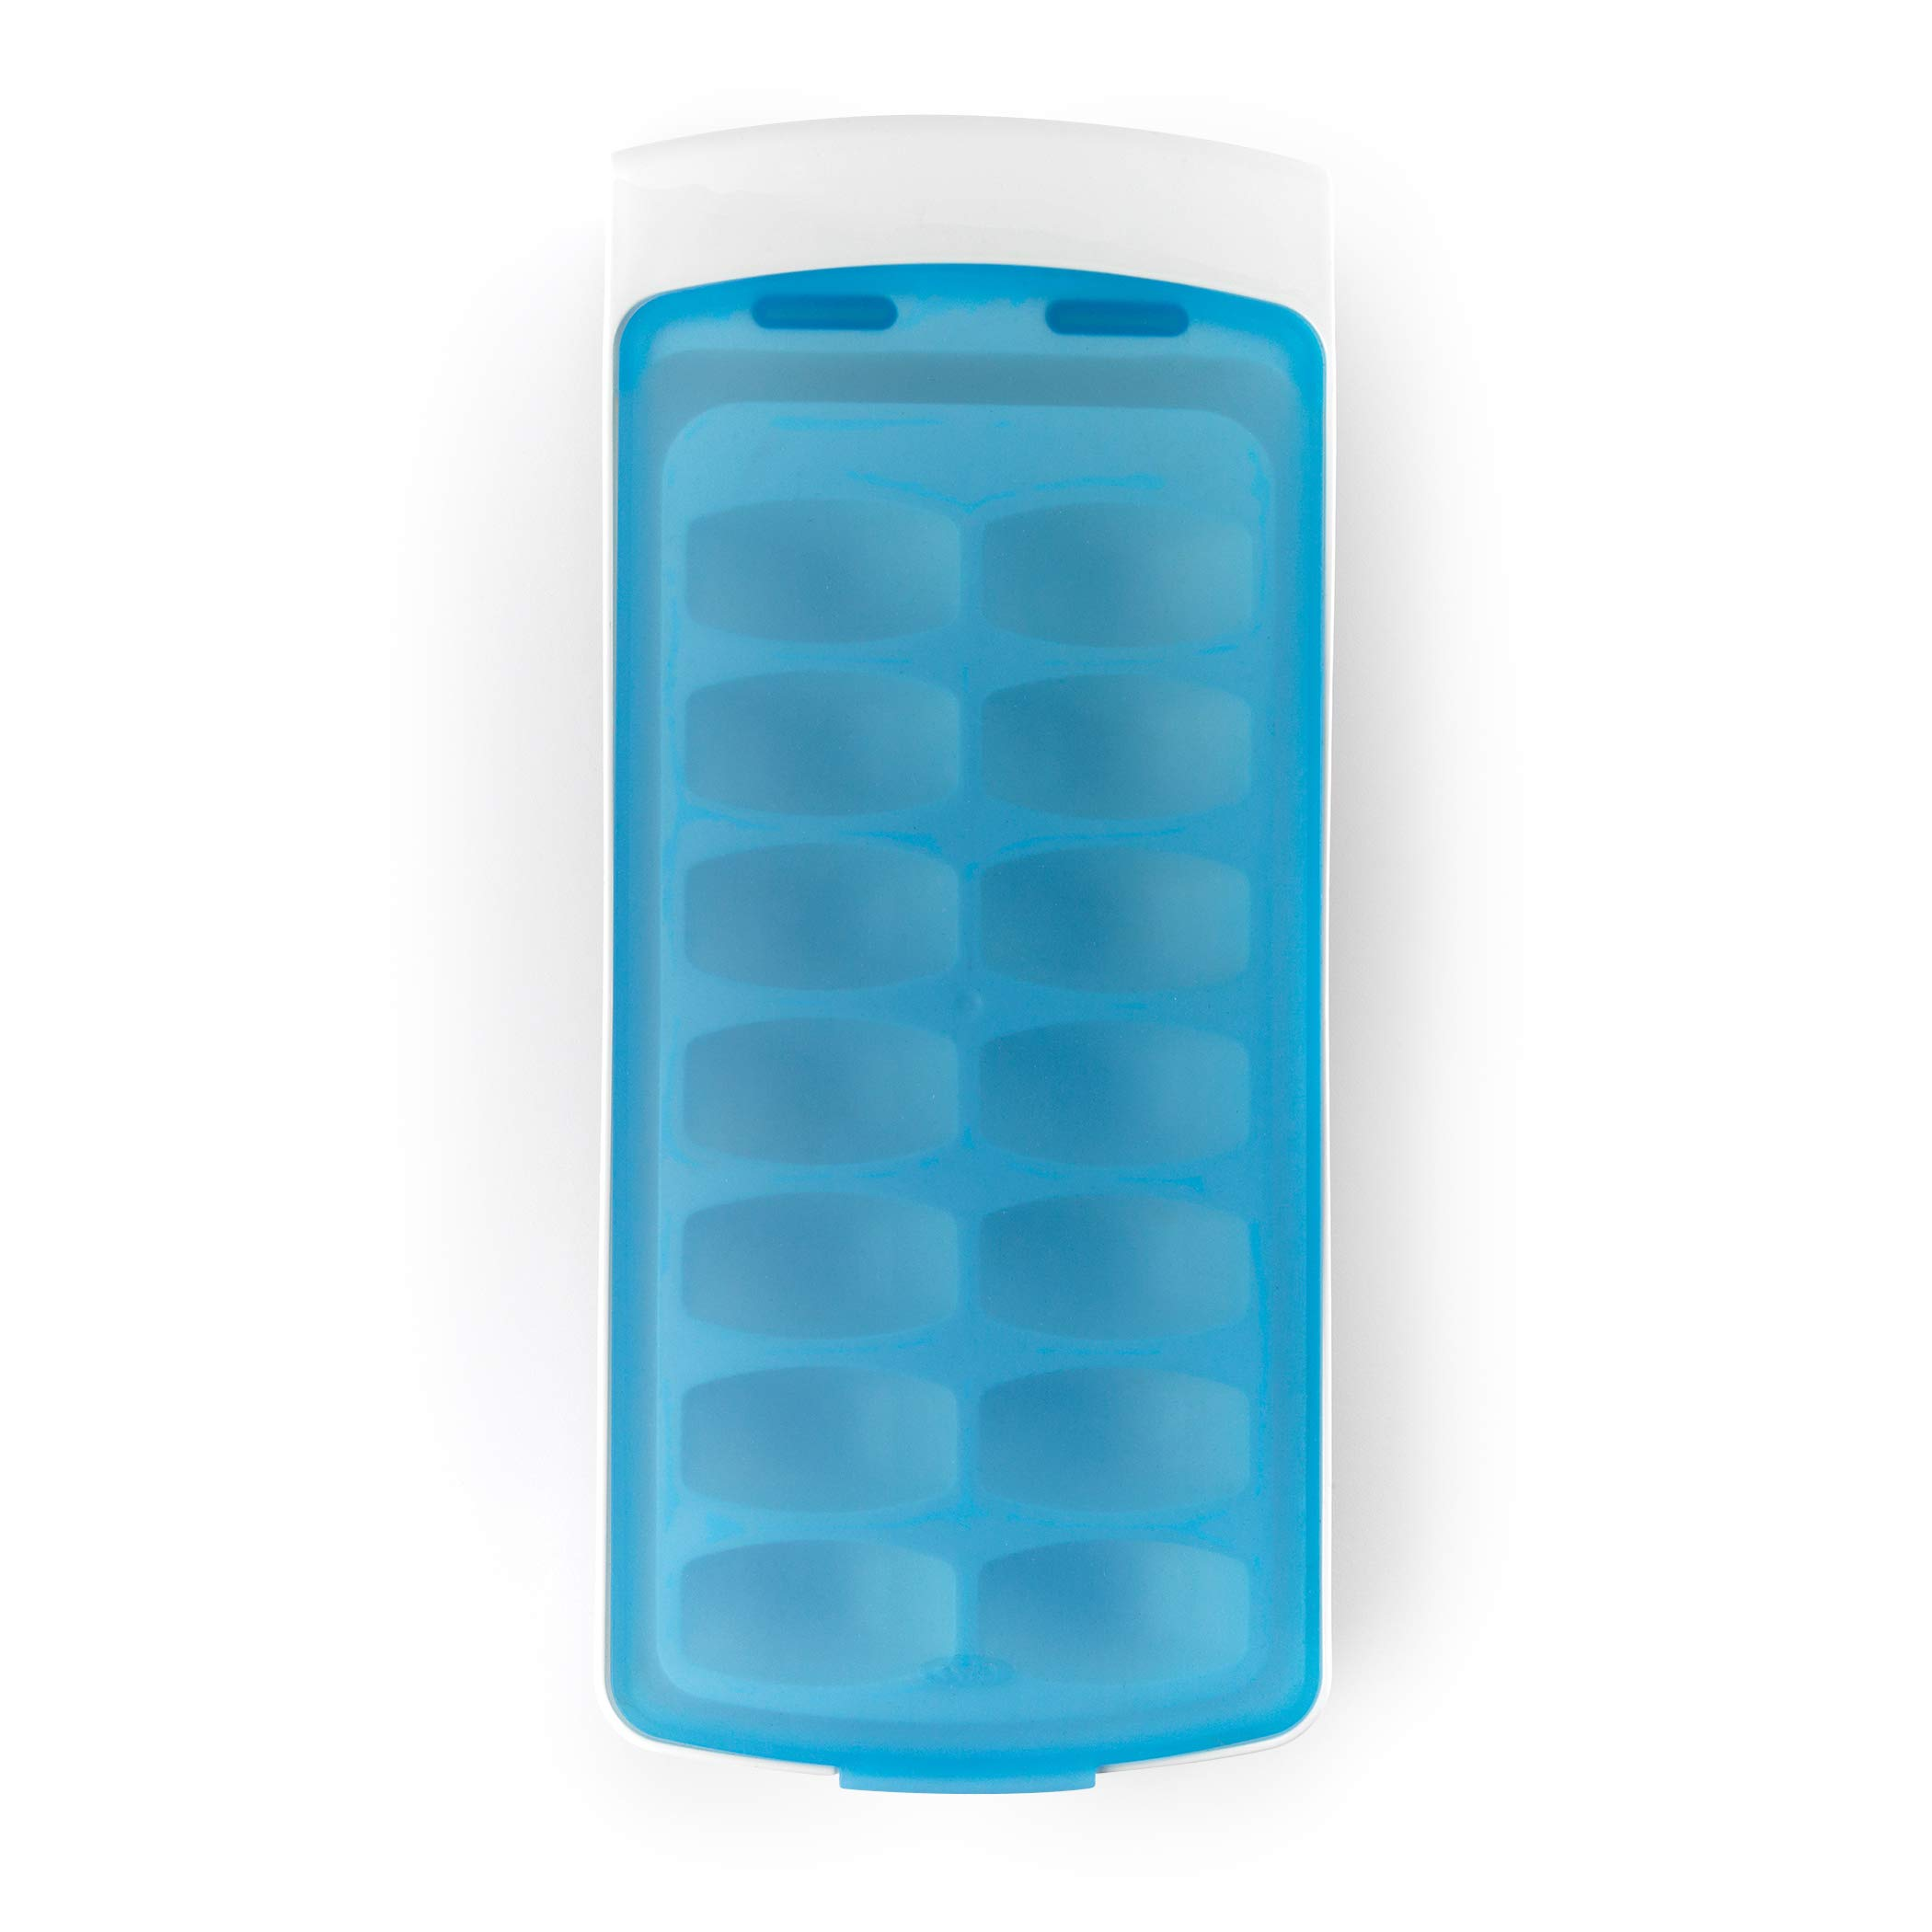 OXO Good Grips No-Spill Ice Cube Tray with Silicone Lid